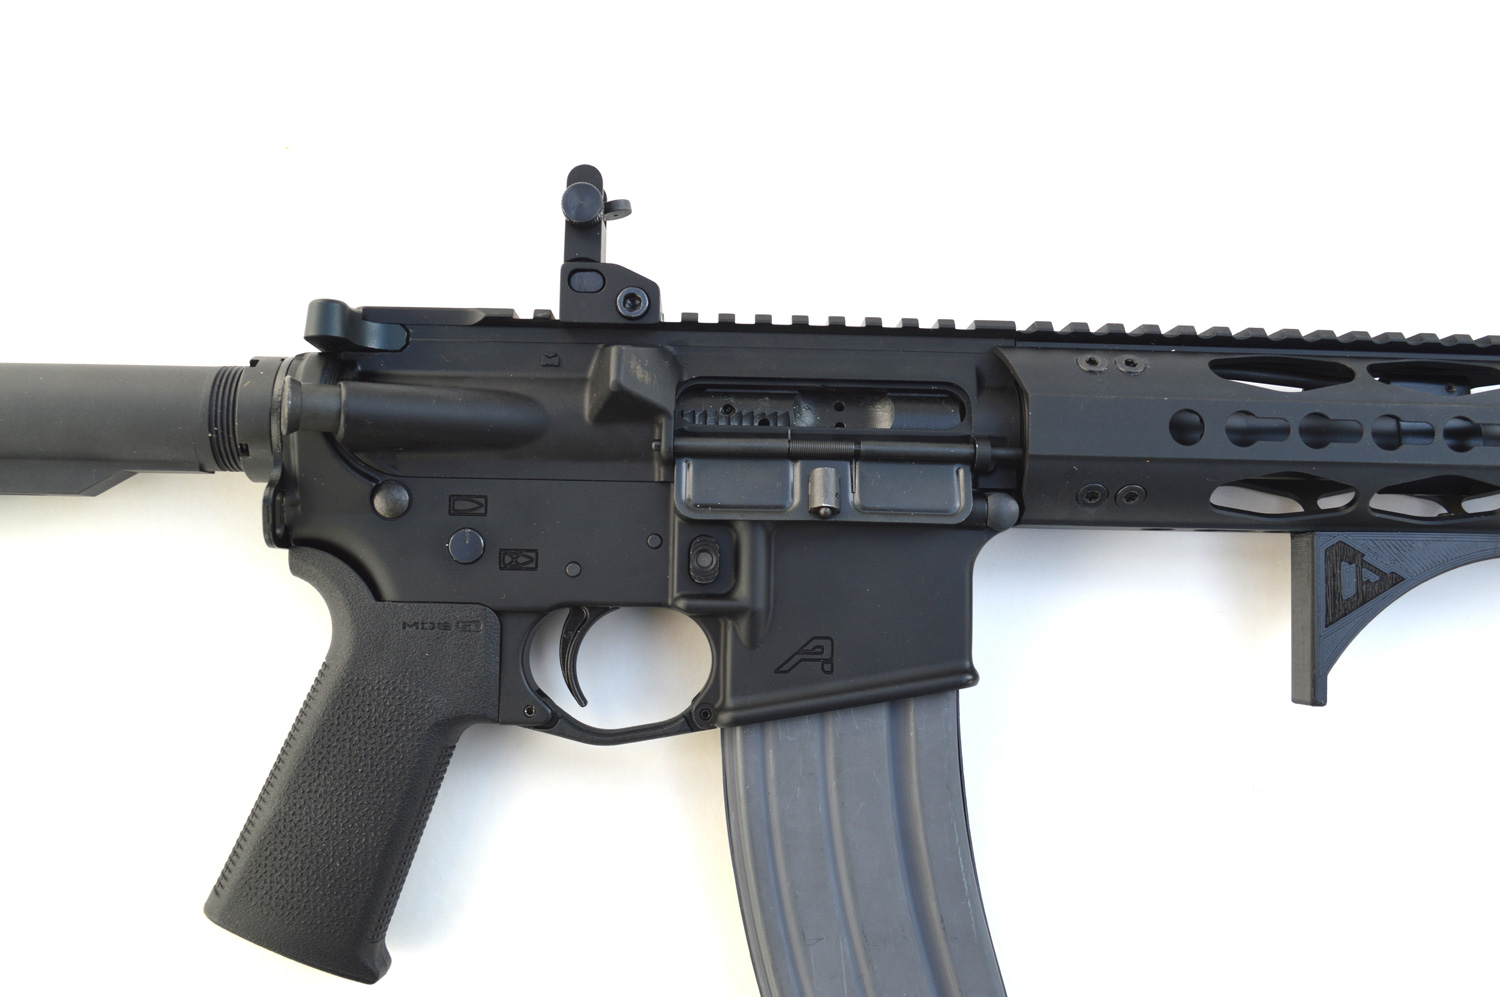 Picatinny top rail on an AR-15